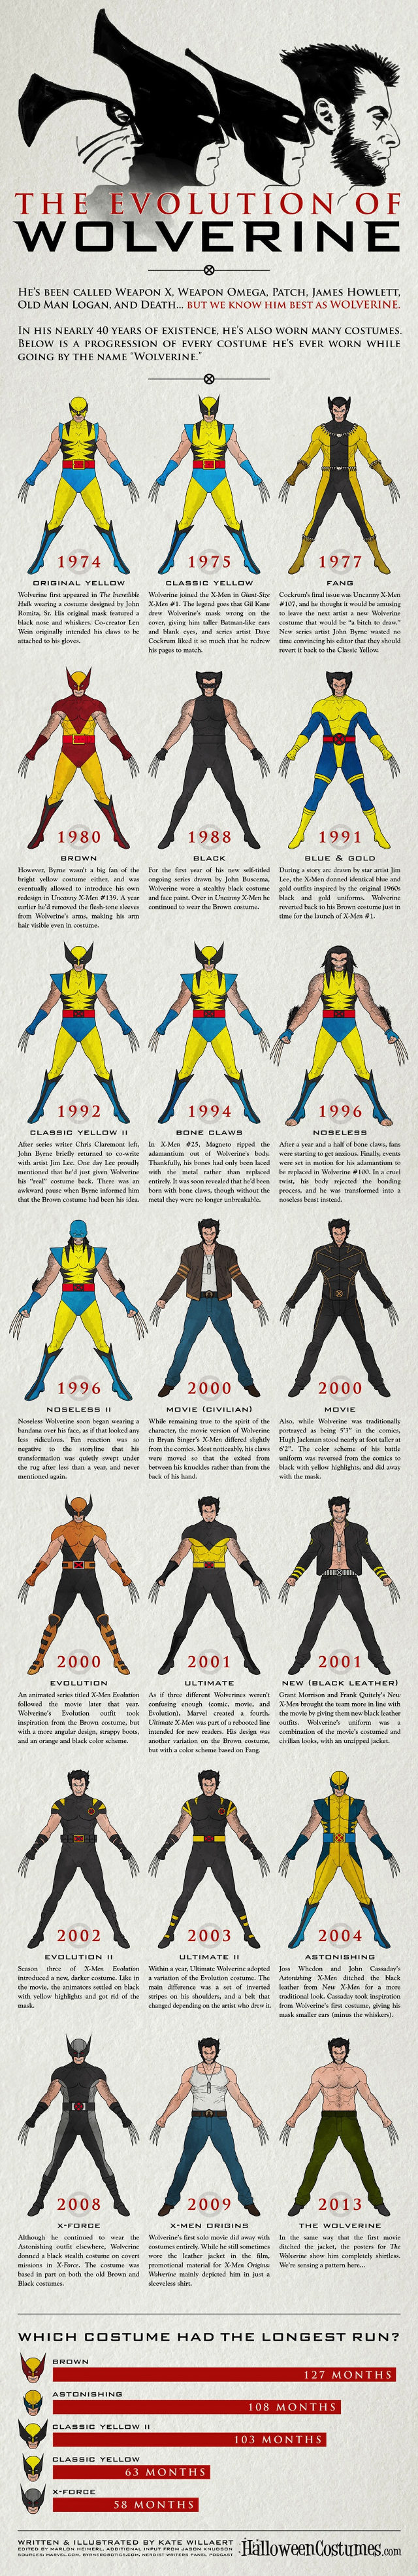 evolution-of-wolverine-costumes